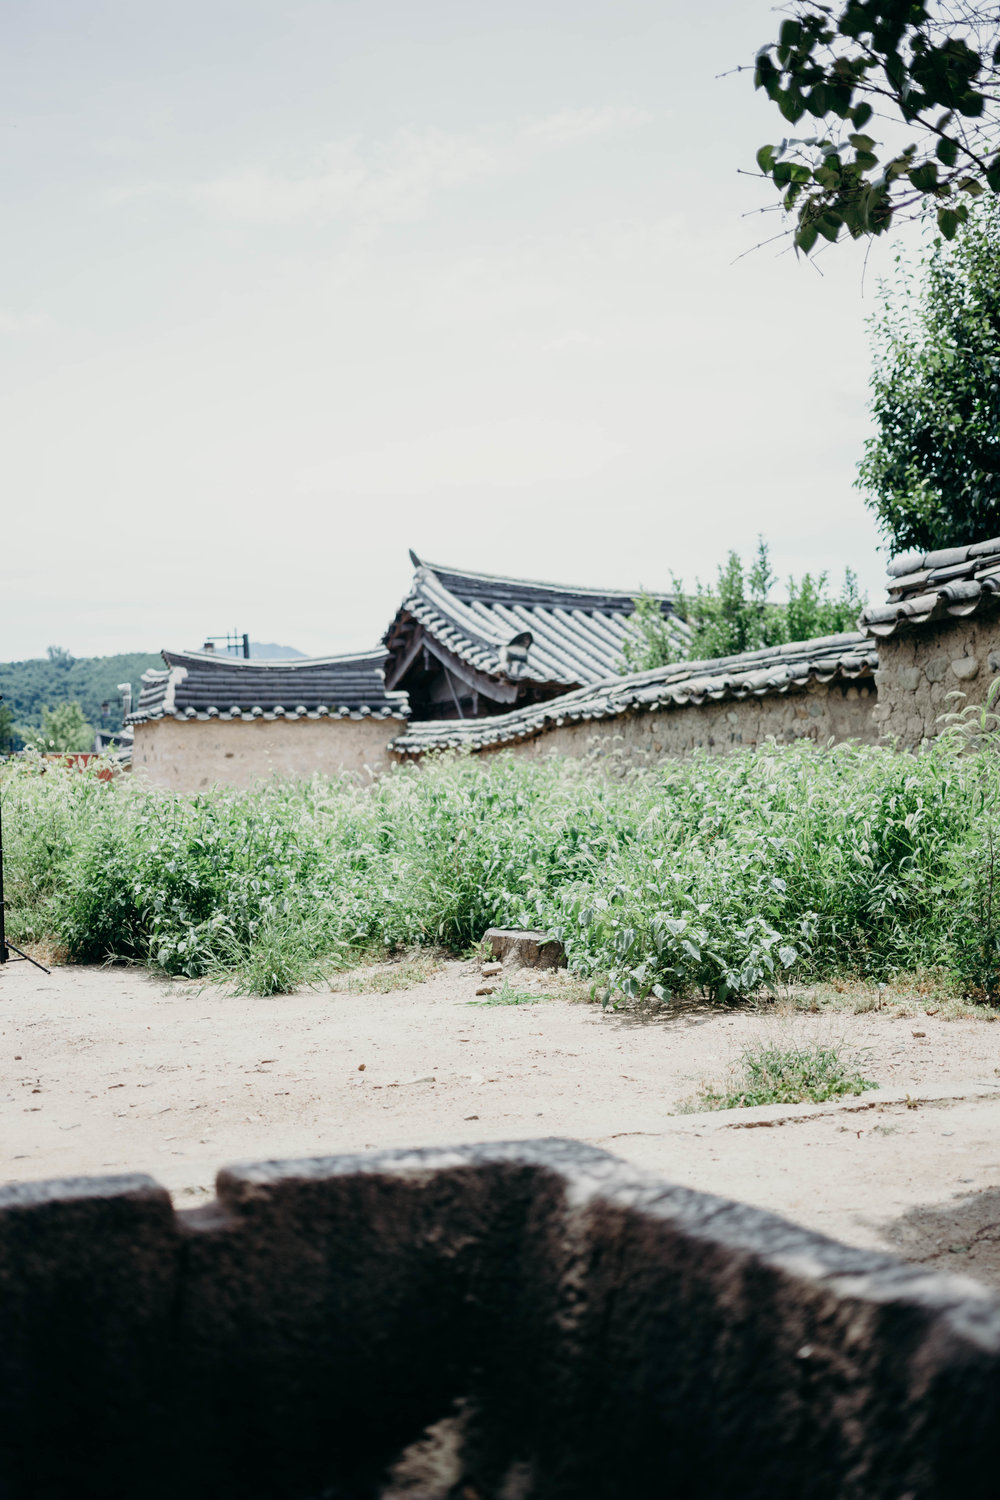 Gyeongju, South Korea: The City That Stole My Heart | On the Street Where We Live (aretherelilactrees.com)  Yangdong Folk Village